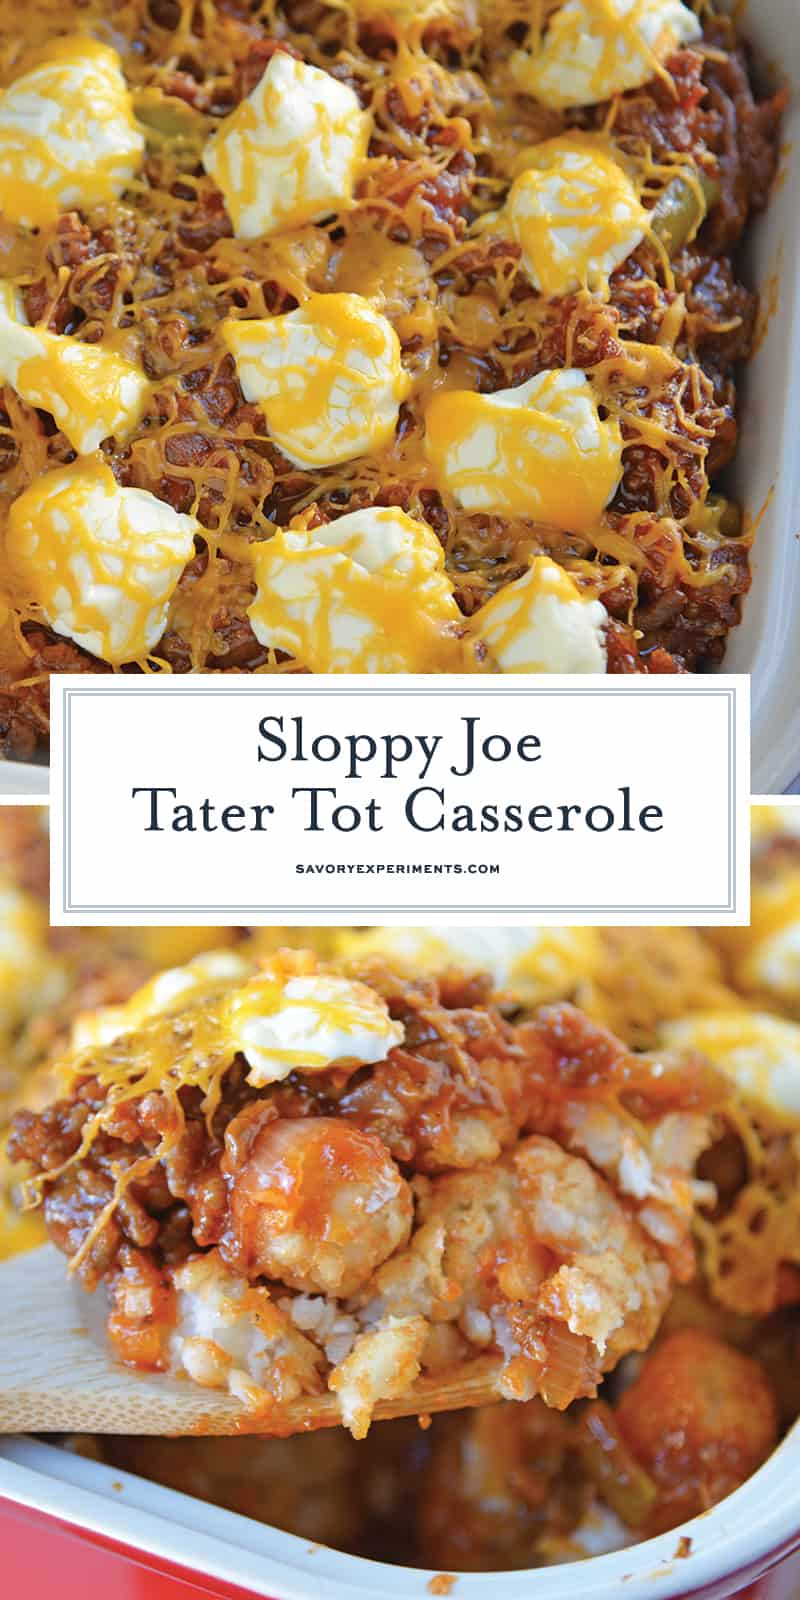 Sloppy Joe Tater Tot Casserole combines layers of crispy tater tots with homemade sloppy Joe mix, cream cheese and cheddar for the ultimate quick meal or party food! #tatertotcasserole #sloppyjoes www.savoryexperiments.com